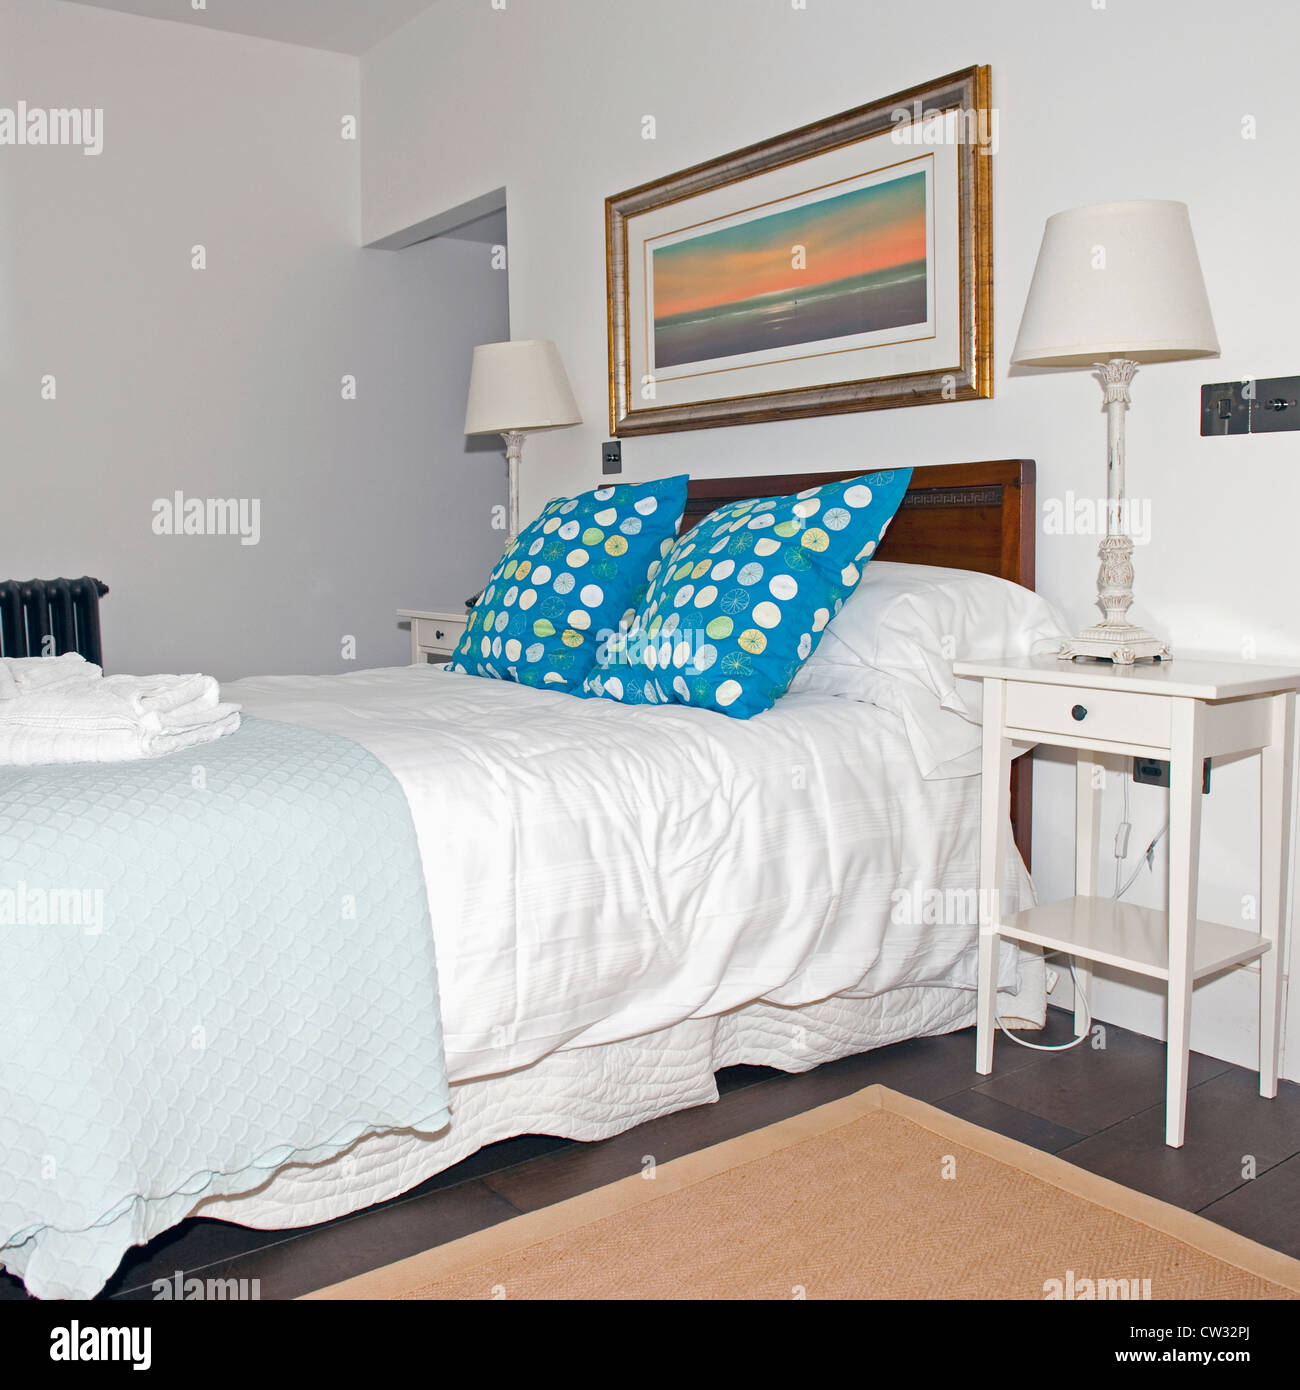 Double bed with bedside lamps. - Stock Image